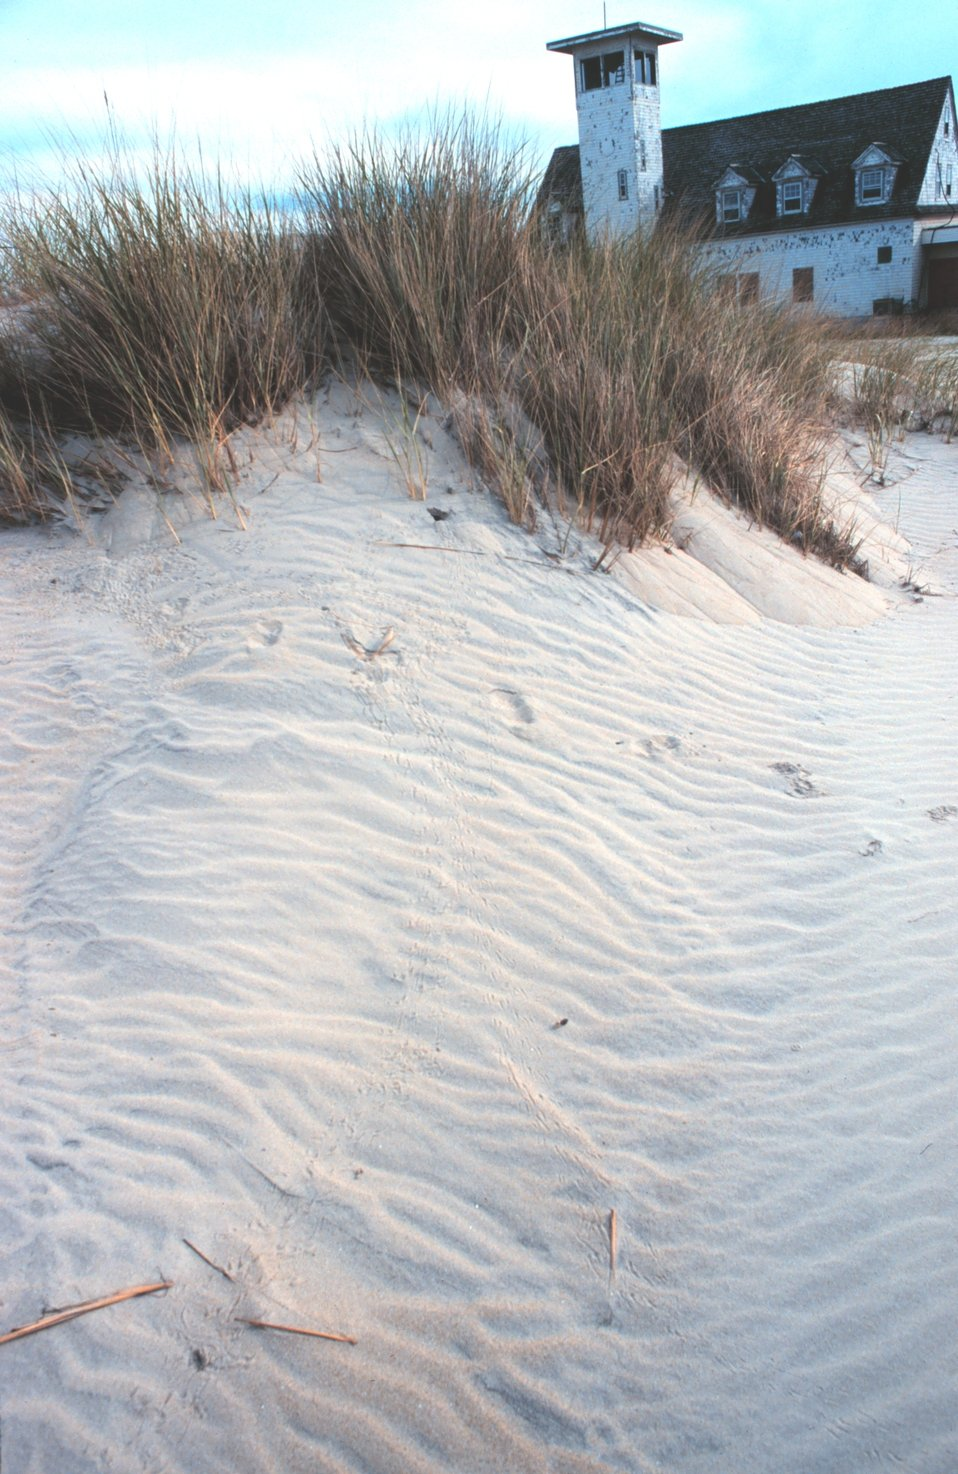 Wind-swept dunes near the abandoned Coast Guard Station